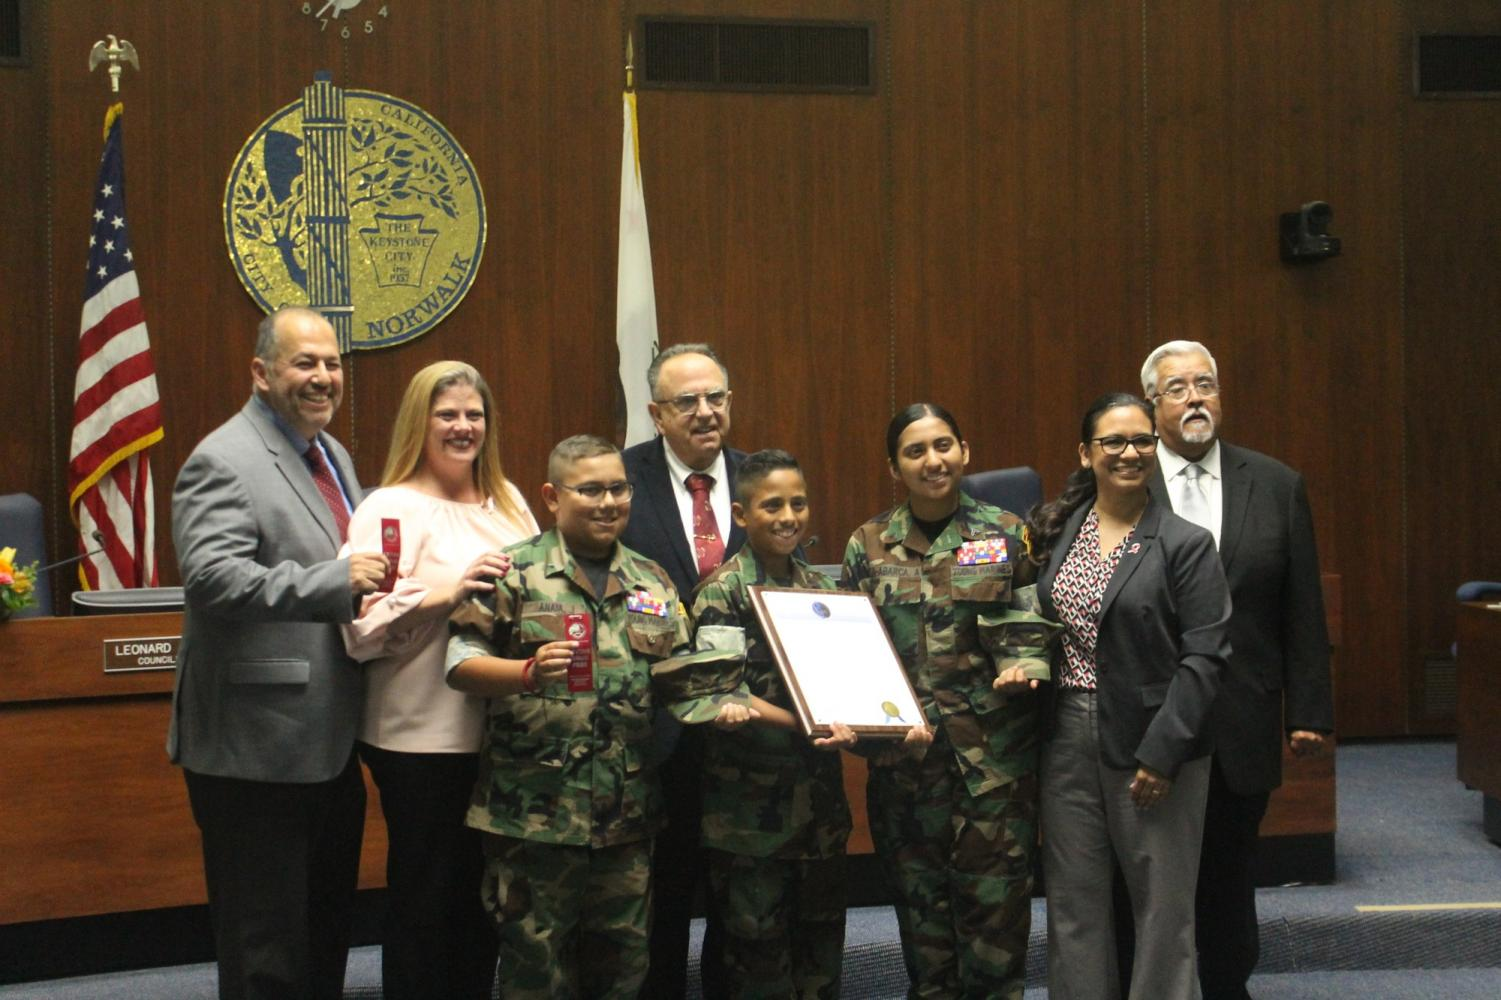 The city council gave out an award to a couple of local kids for Red Ribbon Week. Photo credit: Oscar Torres